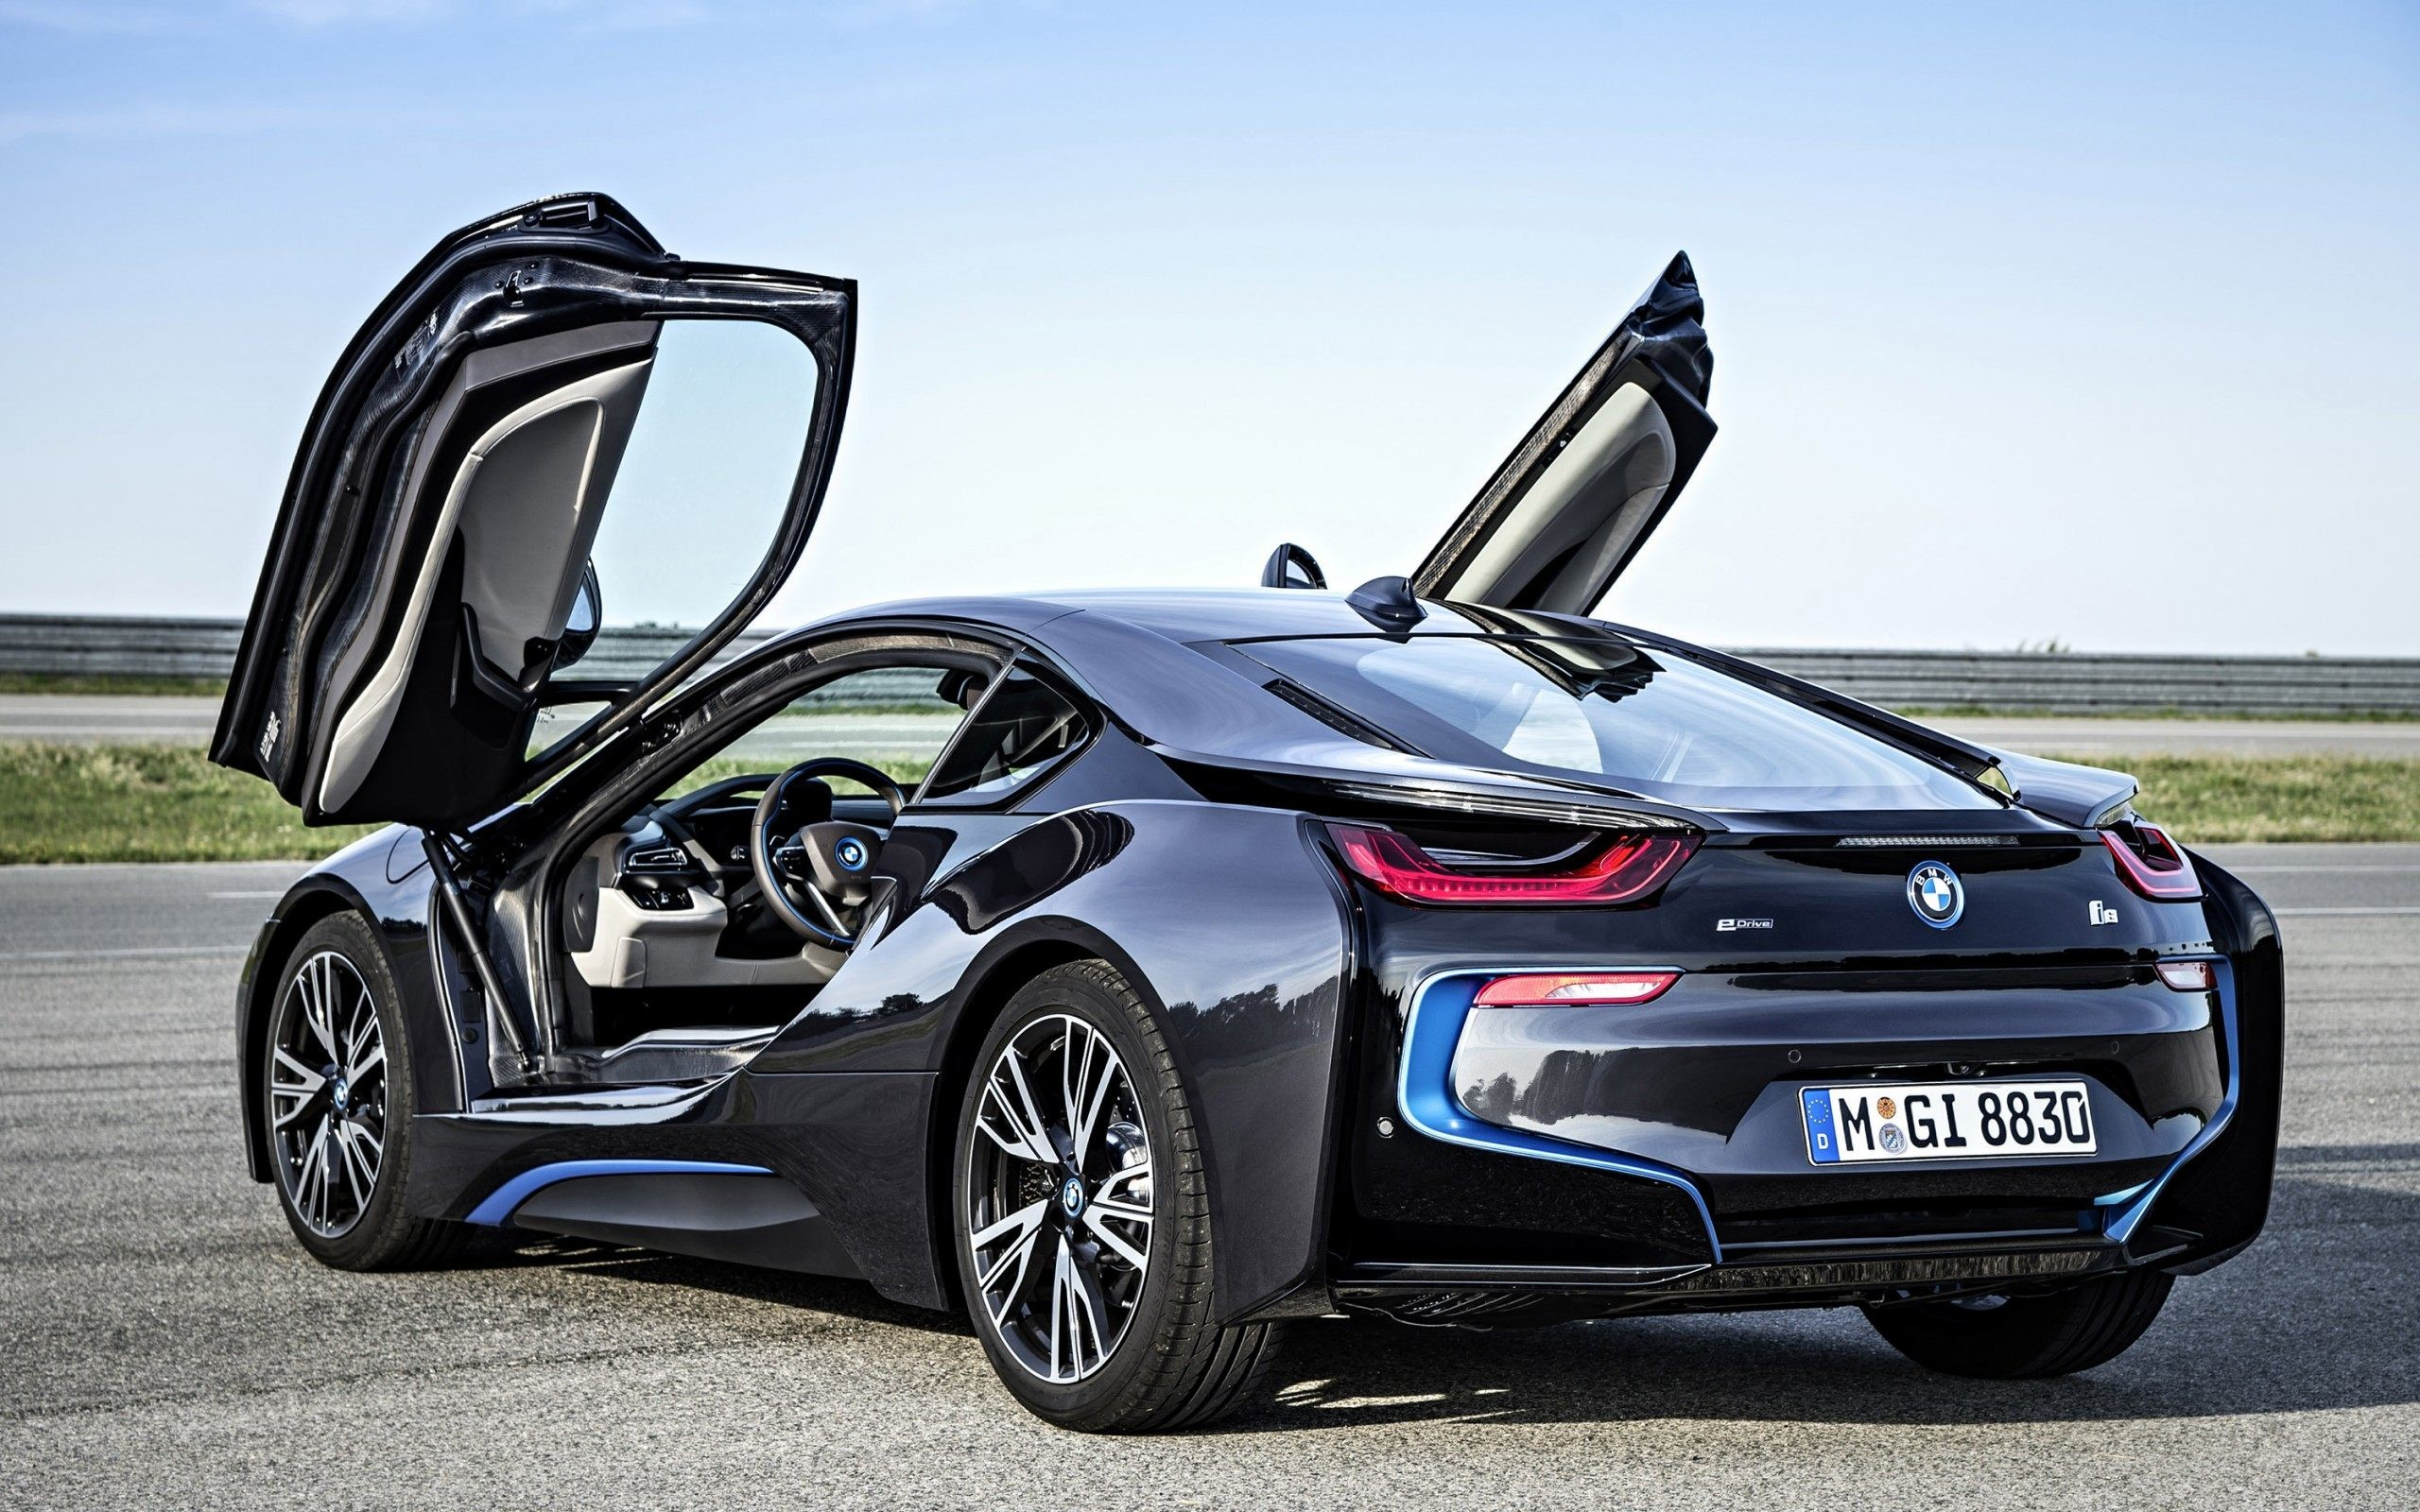 Bmw I8 Black Car Wallpaper Data Src Sports Car Bmw I8 2560x1600 Download Hd Wallpaper Wallpapertip